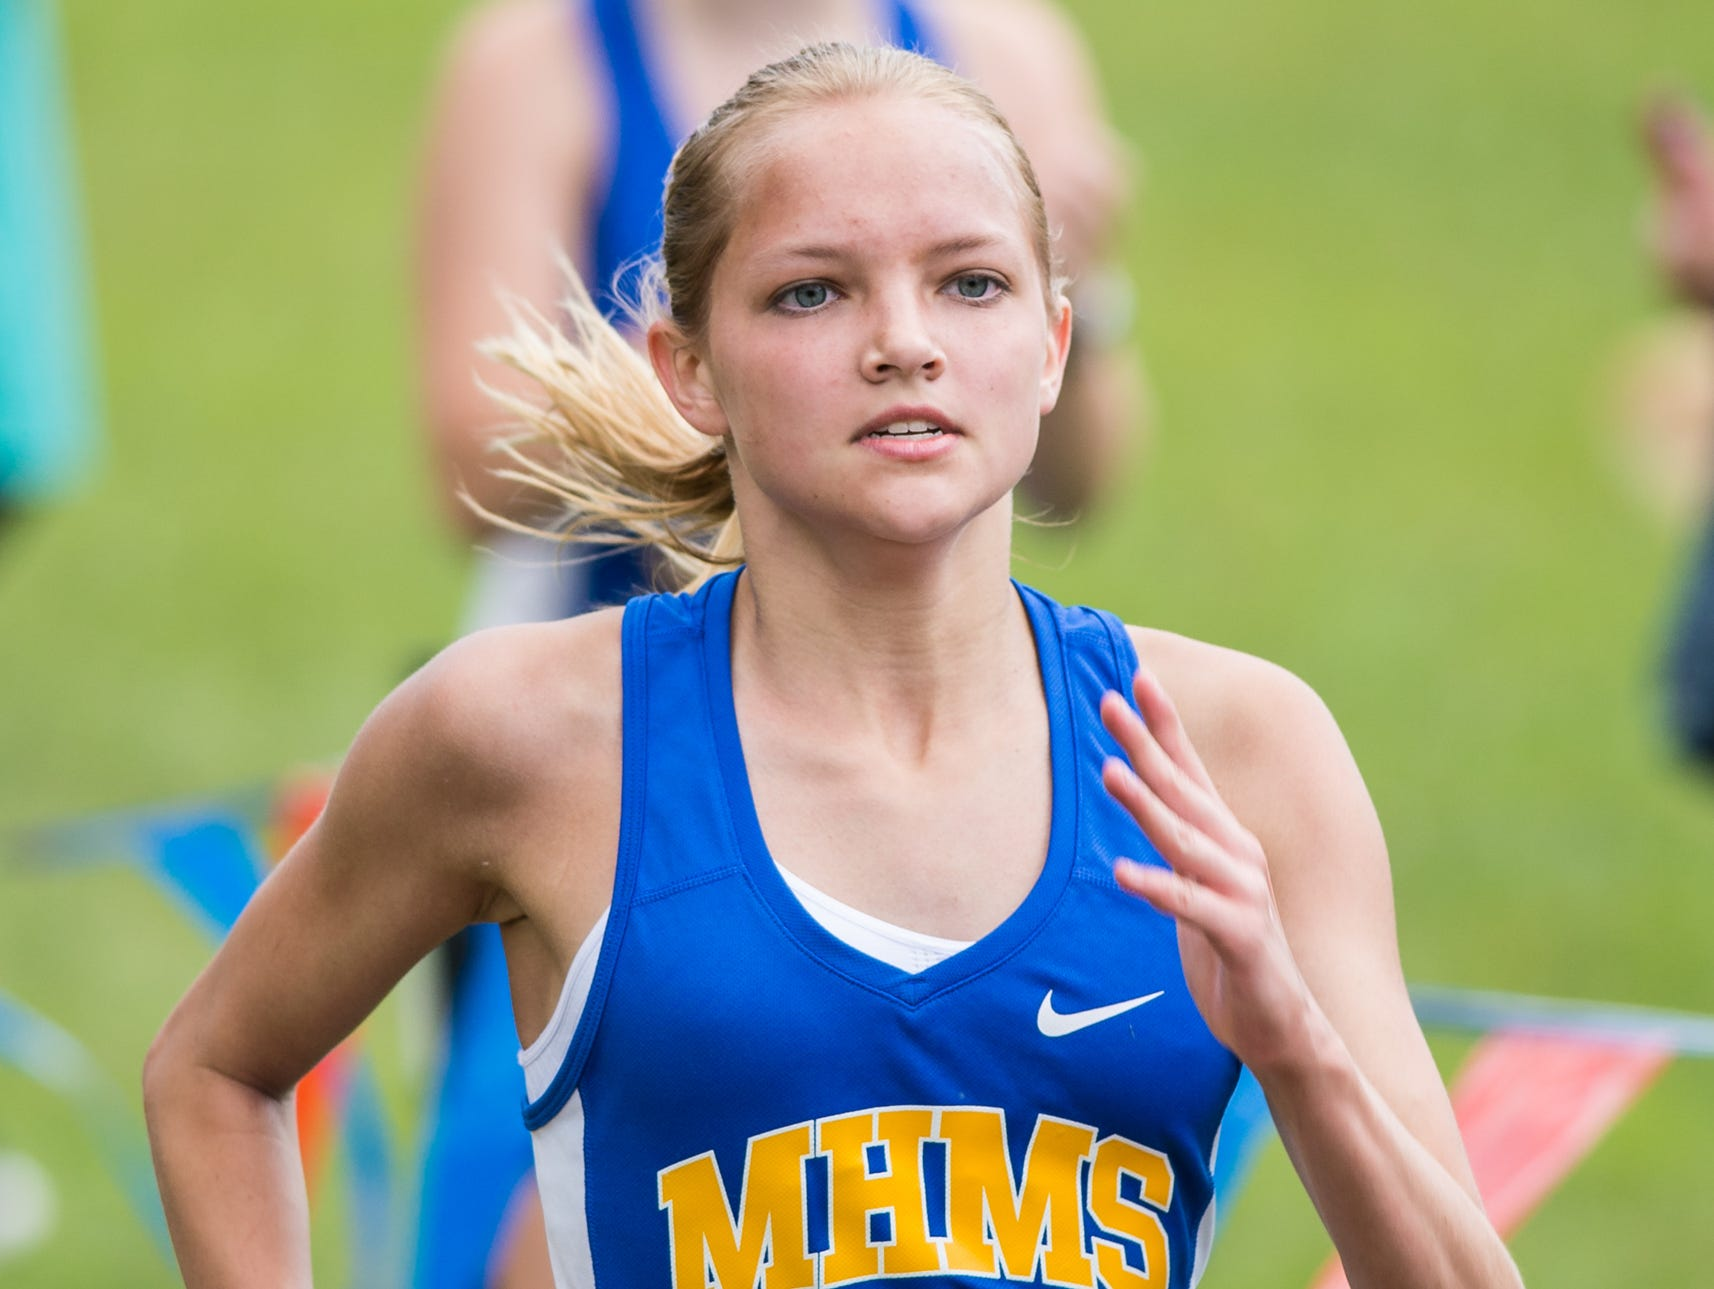 Merrol Hyde Magnet freshman Kaelyn Meier won the girls' 5,000-meter run at the Beech Invitational cross country meet on Saturday.